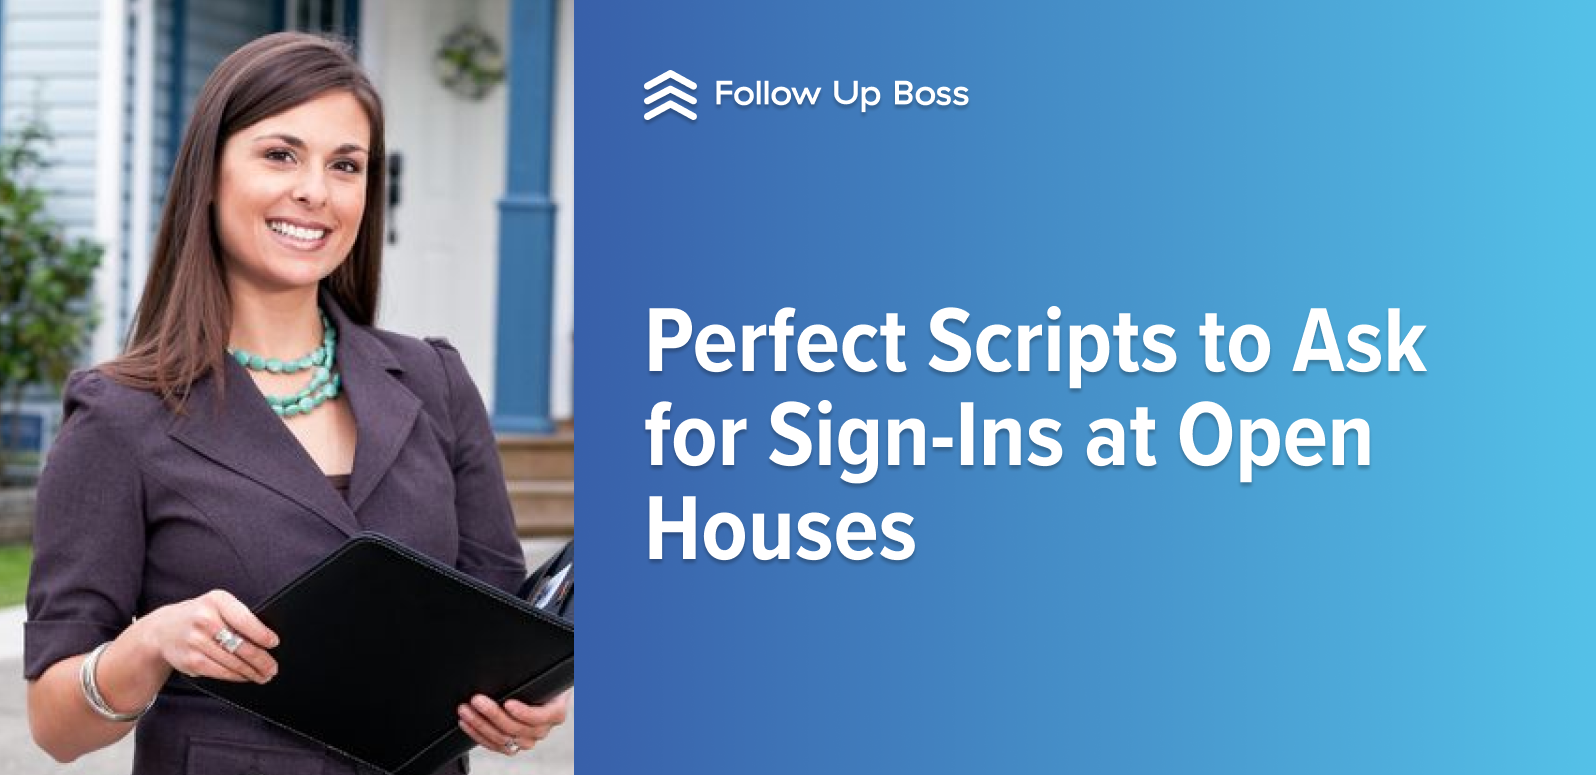 Perfect Scripts to Ask for Sign-Ins at Open Houses